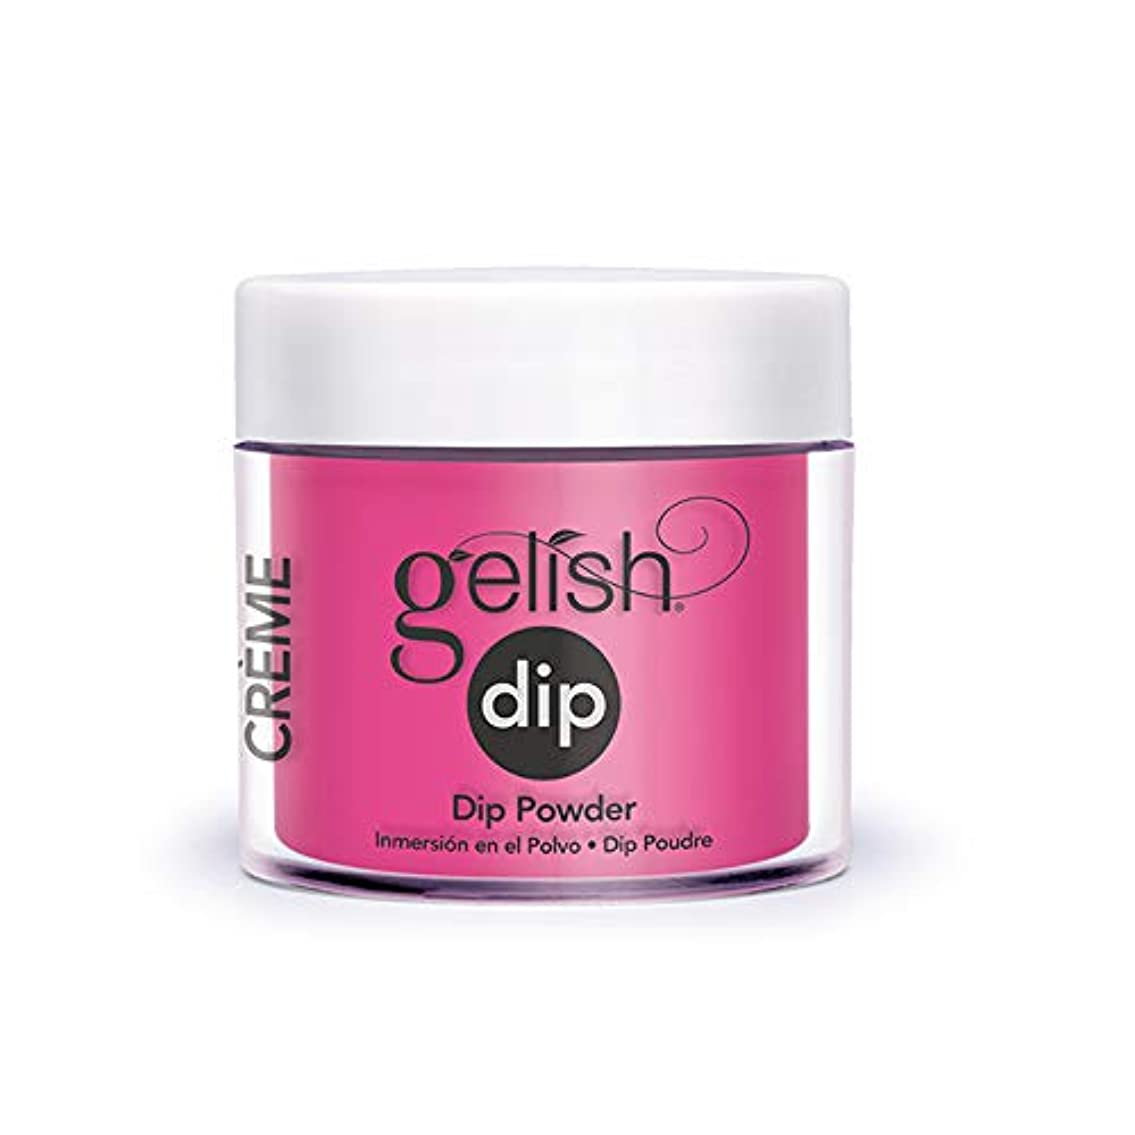 入場無限大深めるHarmony Gelish - Acrylic Dip Powder - Pop-arazzi Pose - 23g / 0.8oz